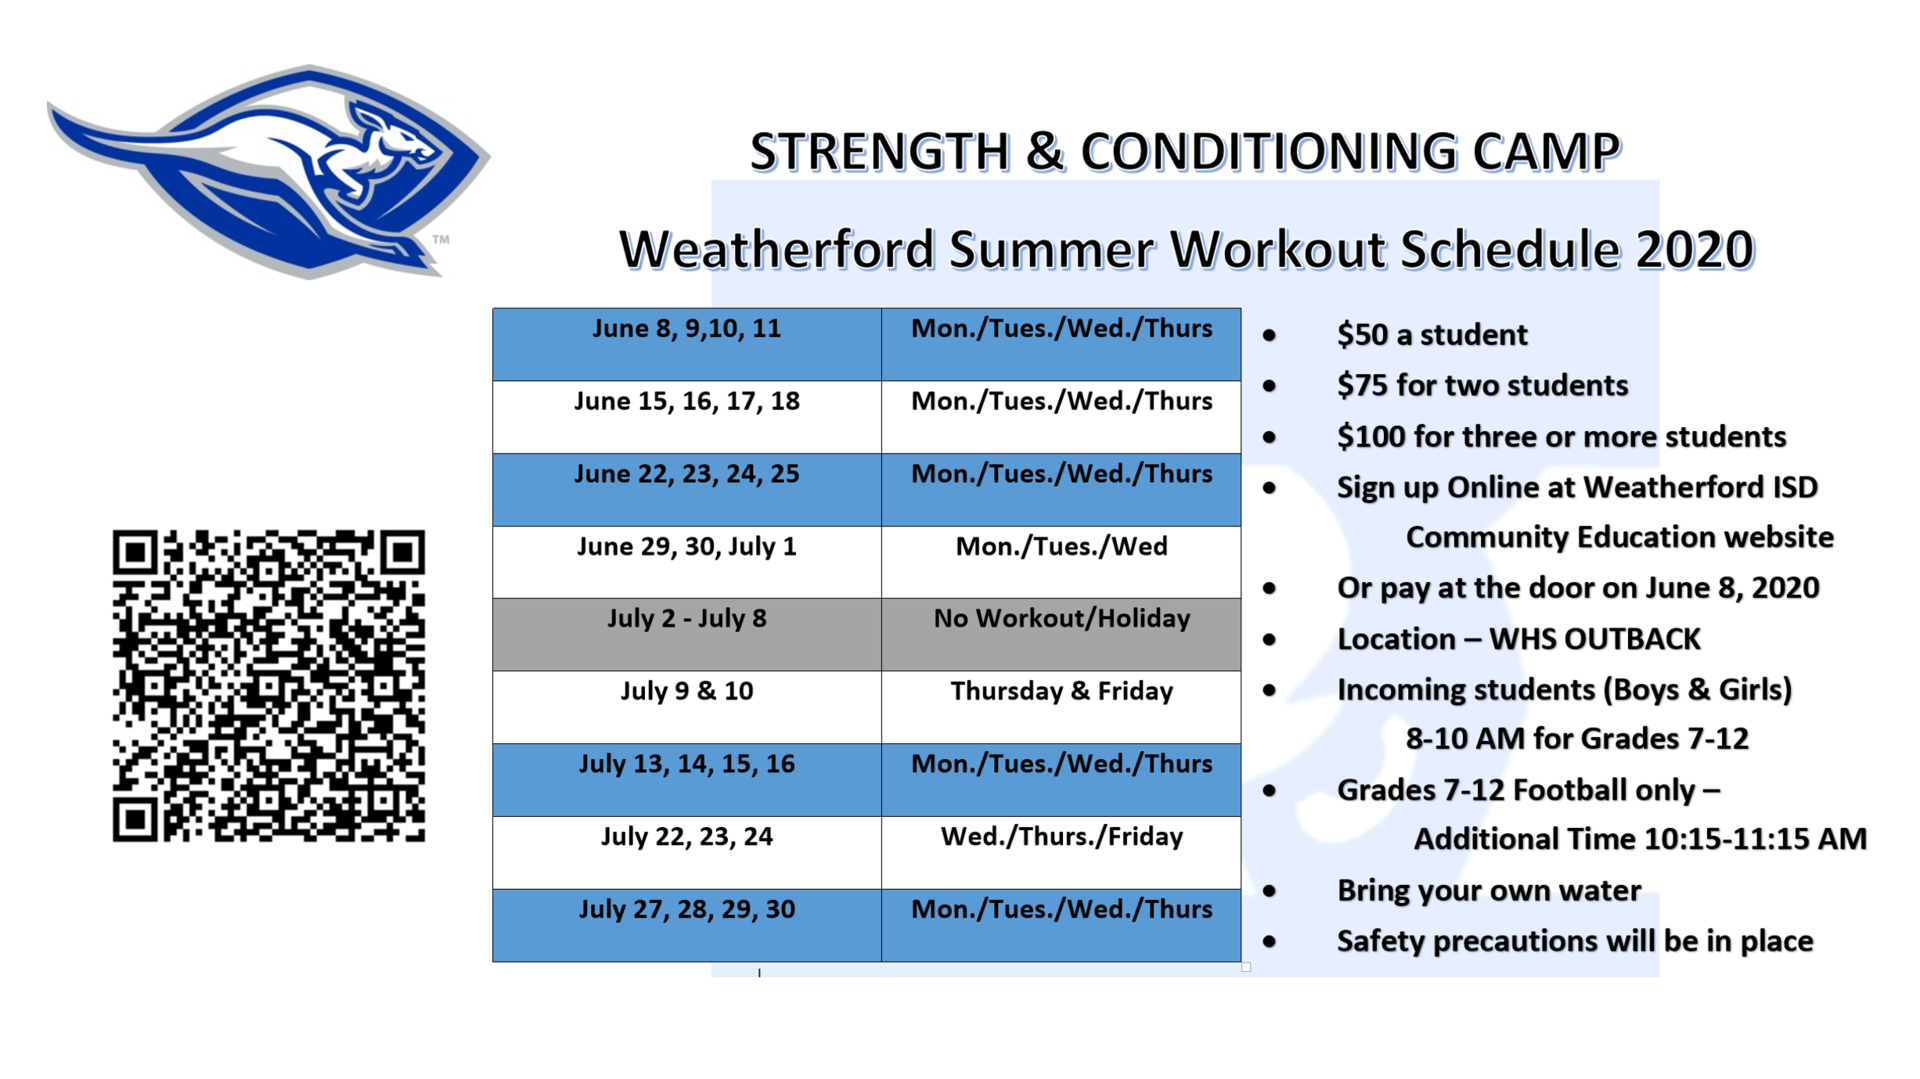 Strength & Conditioning Camp